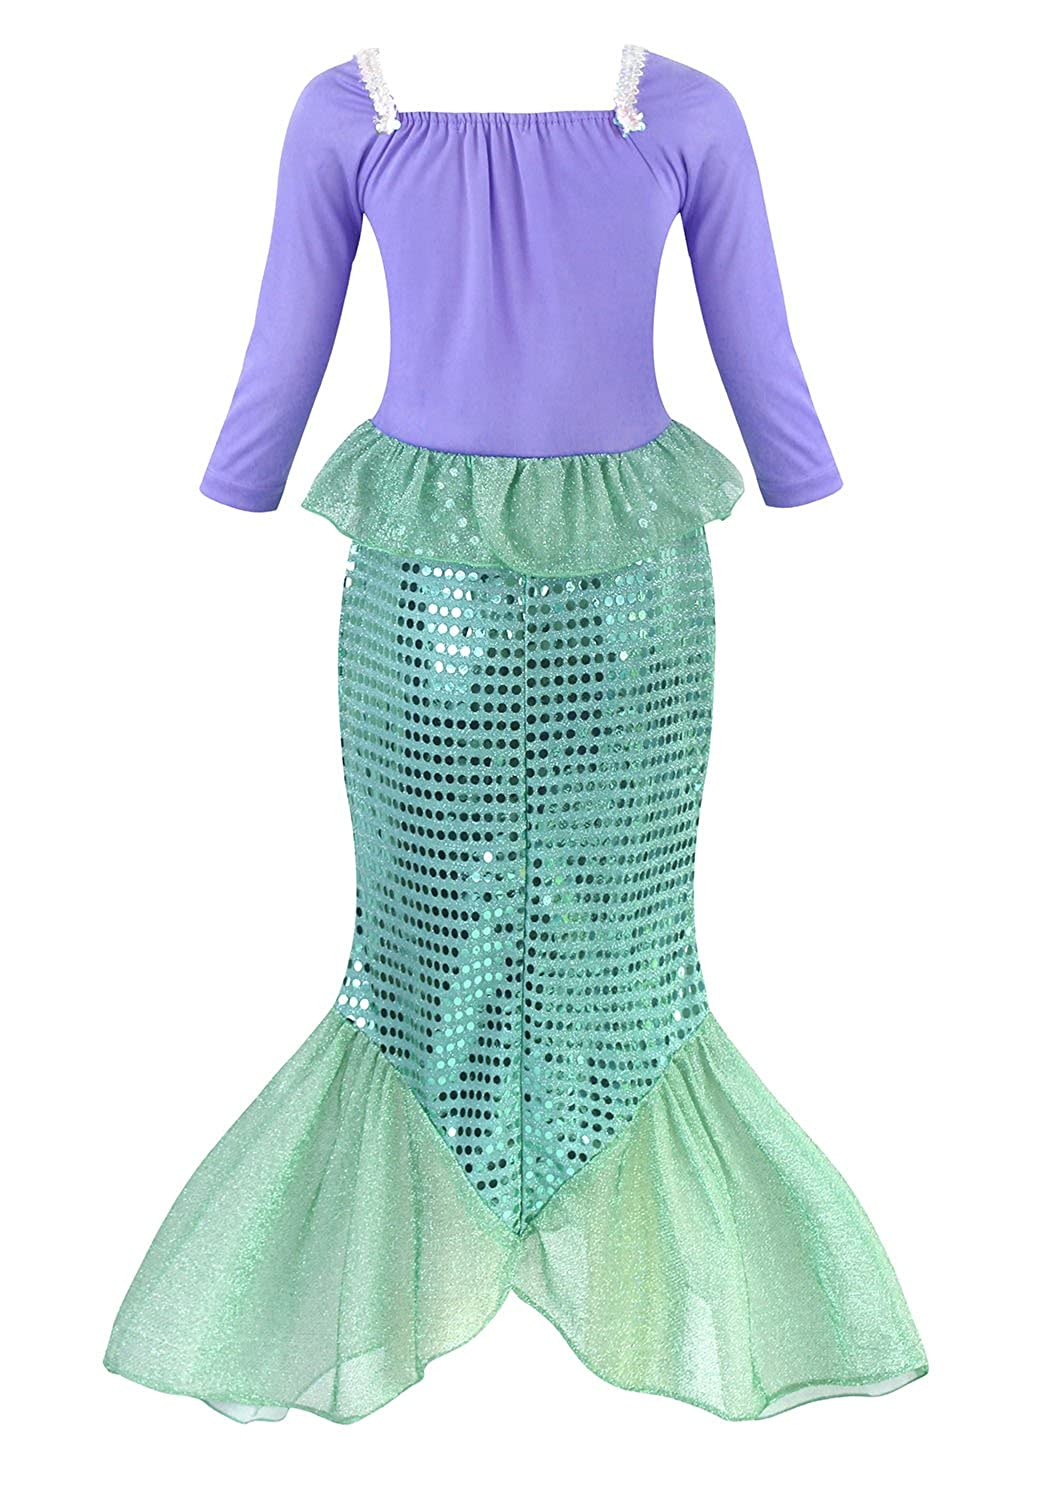 73286ced057b AmzBarley The Little Mermaid Costume Ariel Dress up Girls Kids Fish Tail  Party Fancy Dresses Halloween Costumes Clothes Holiday Birthday Outfit  ...